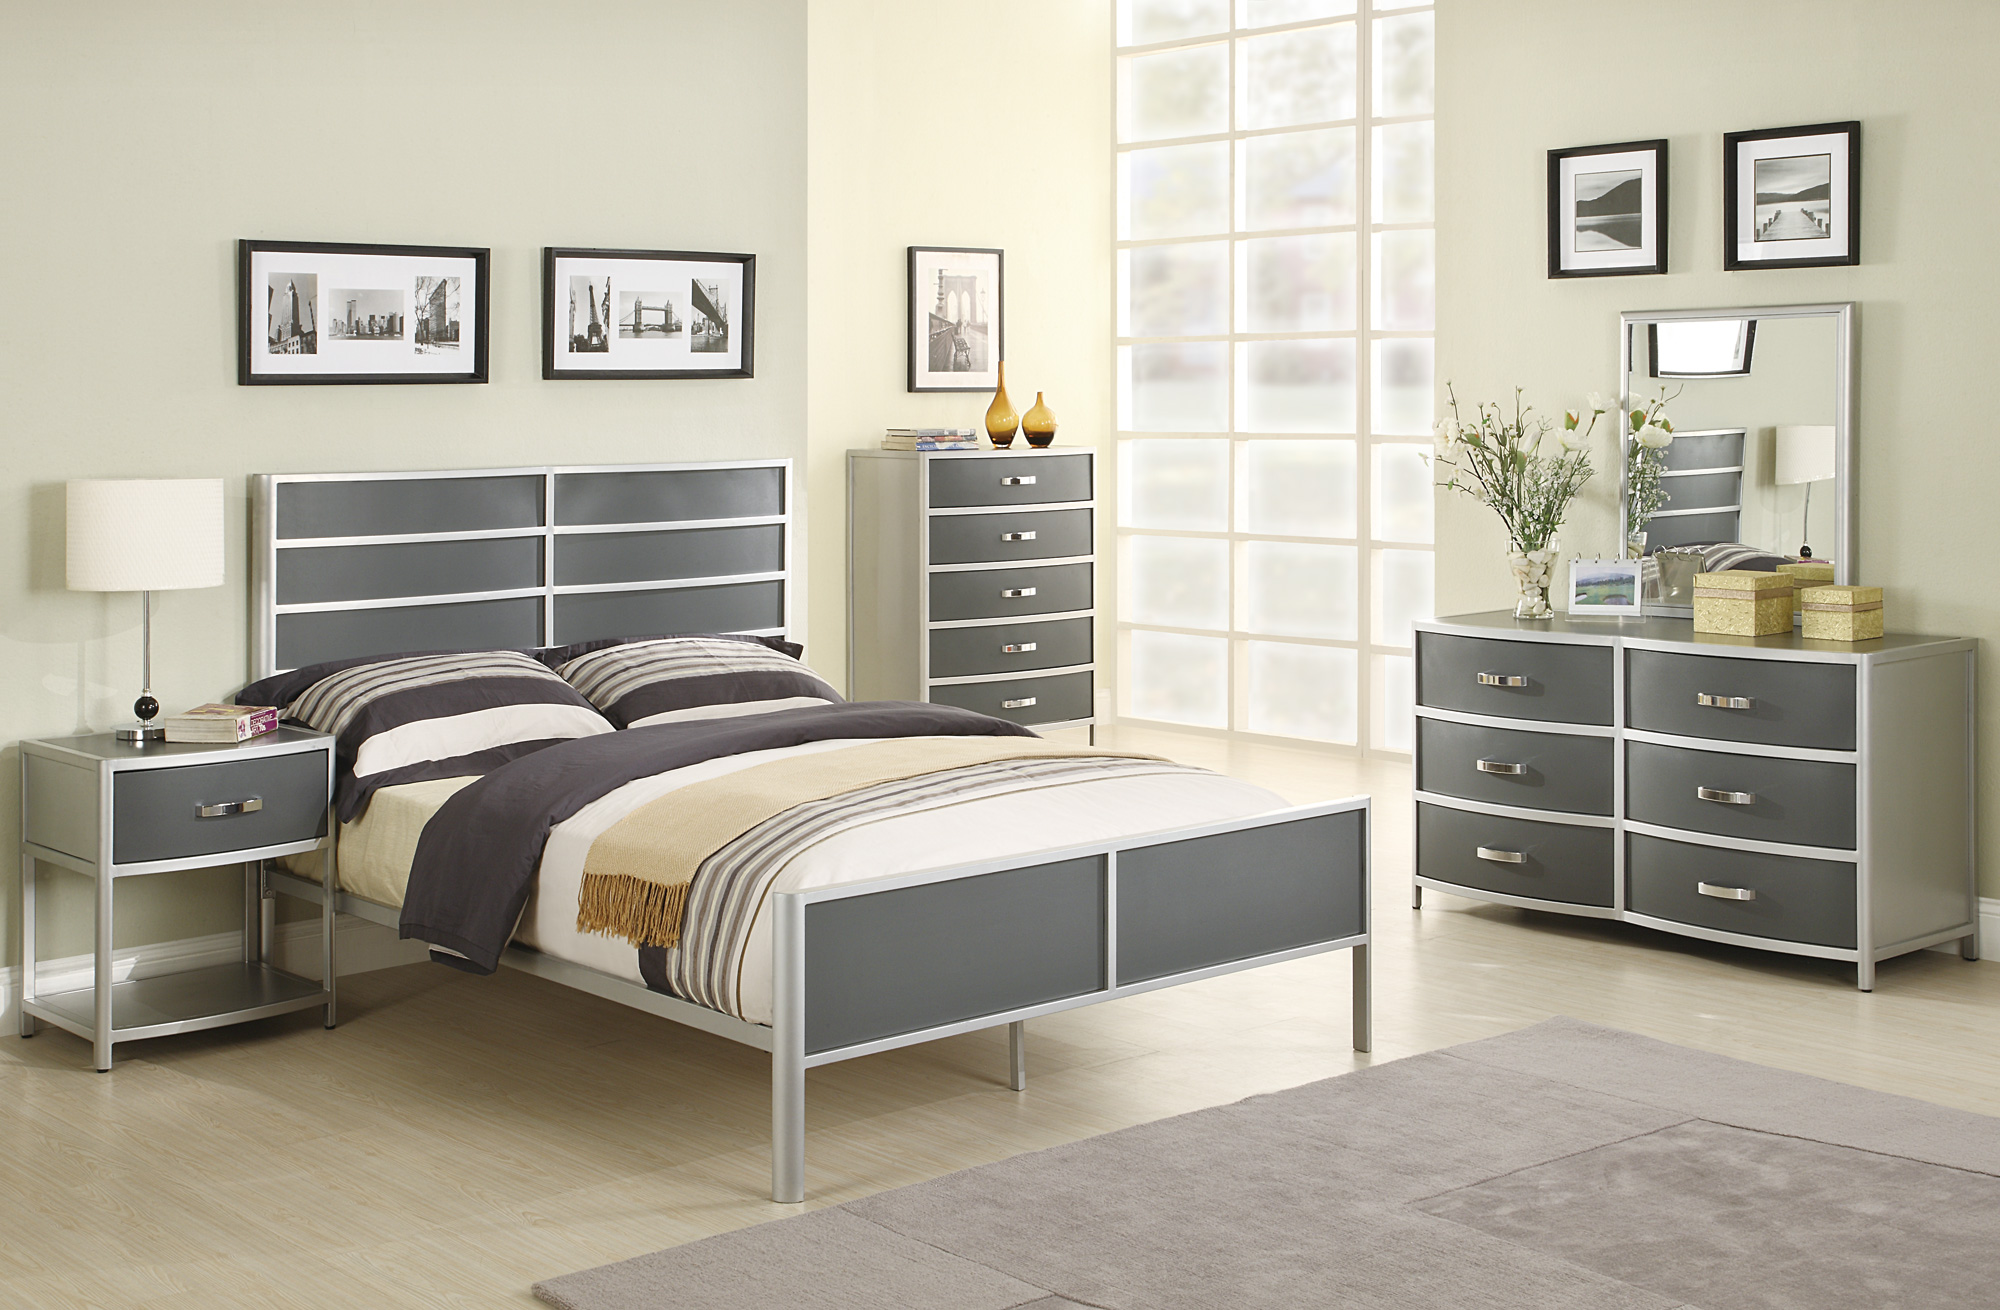 silver bedroom furniture sets photo - 3